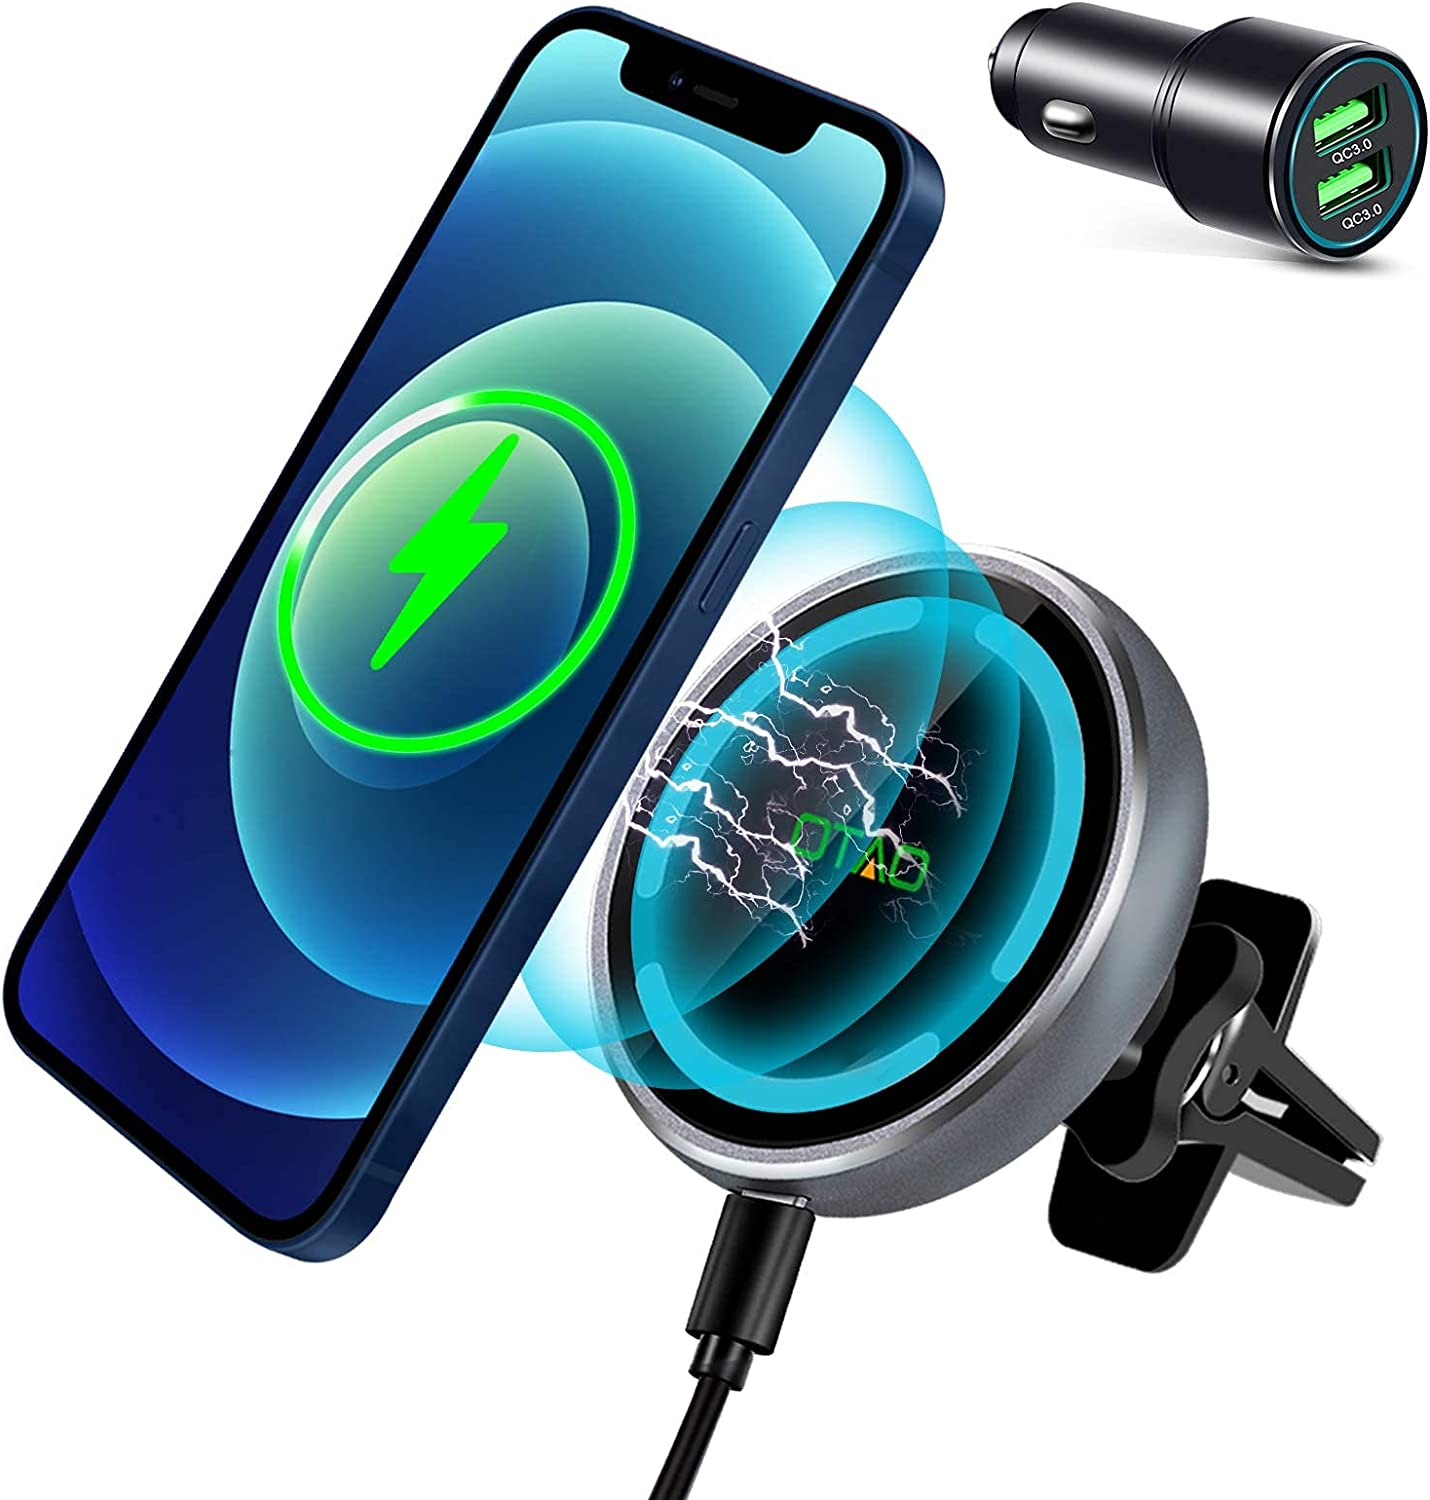 Magnetic Wireless Car Charger for iPhone 12/12 Pro /12 Pro Max /12 Mini,OTAO Fast Charging Car Mount [with QC3.0 Adapter],Compatible with MagSafe Cases, Adjustable Air Vent Clamp Car Phone Holder